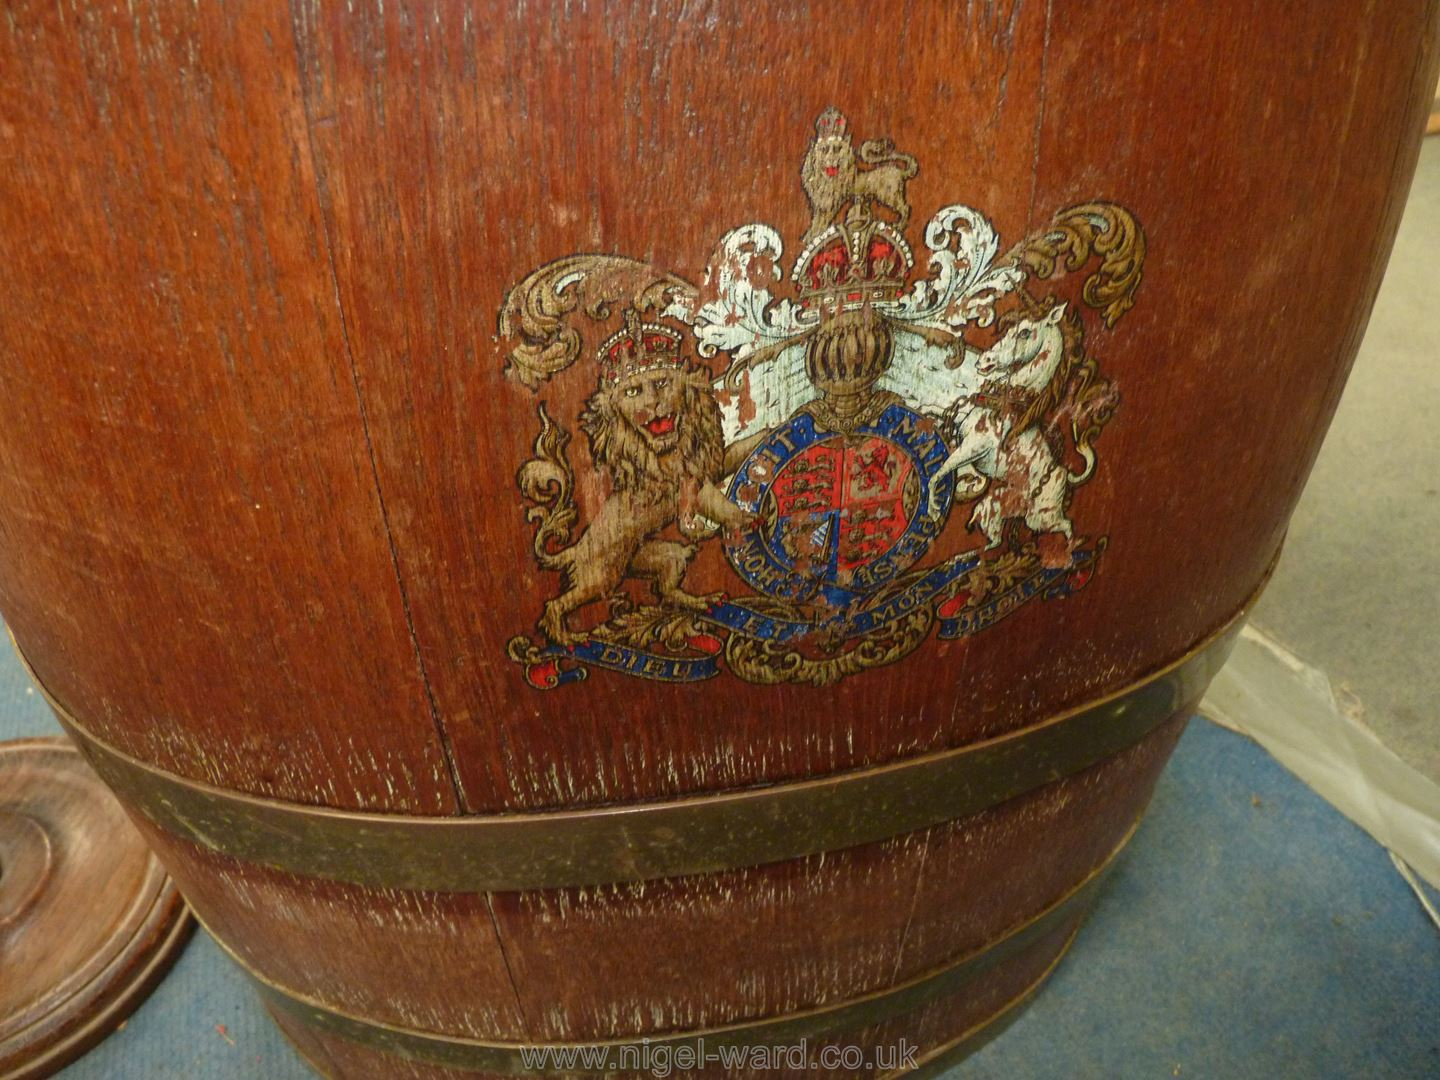 An ovoid coppered Barrel with coat of arms to front, - Image 3 of 4